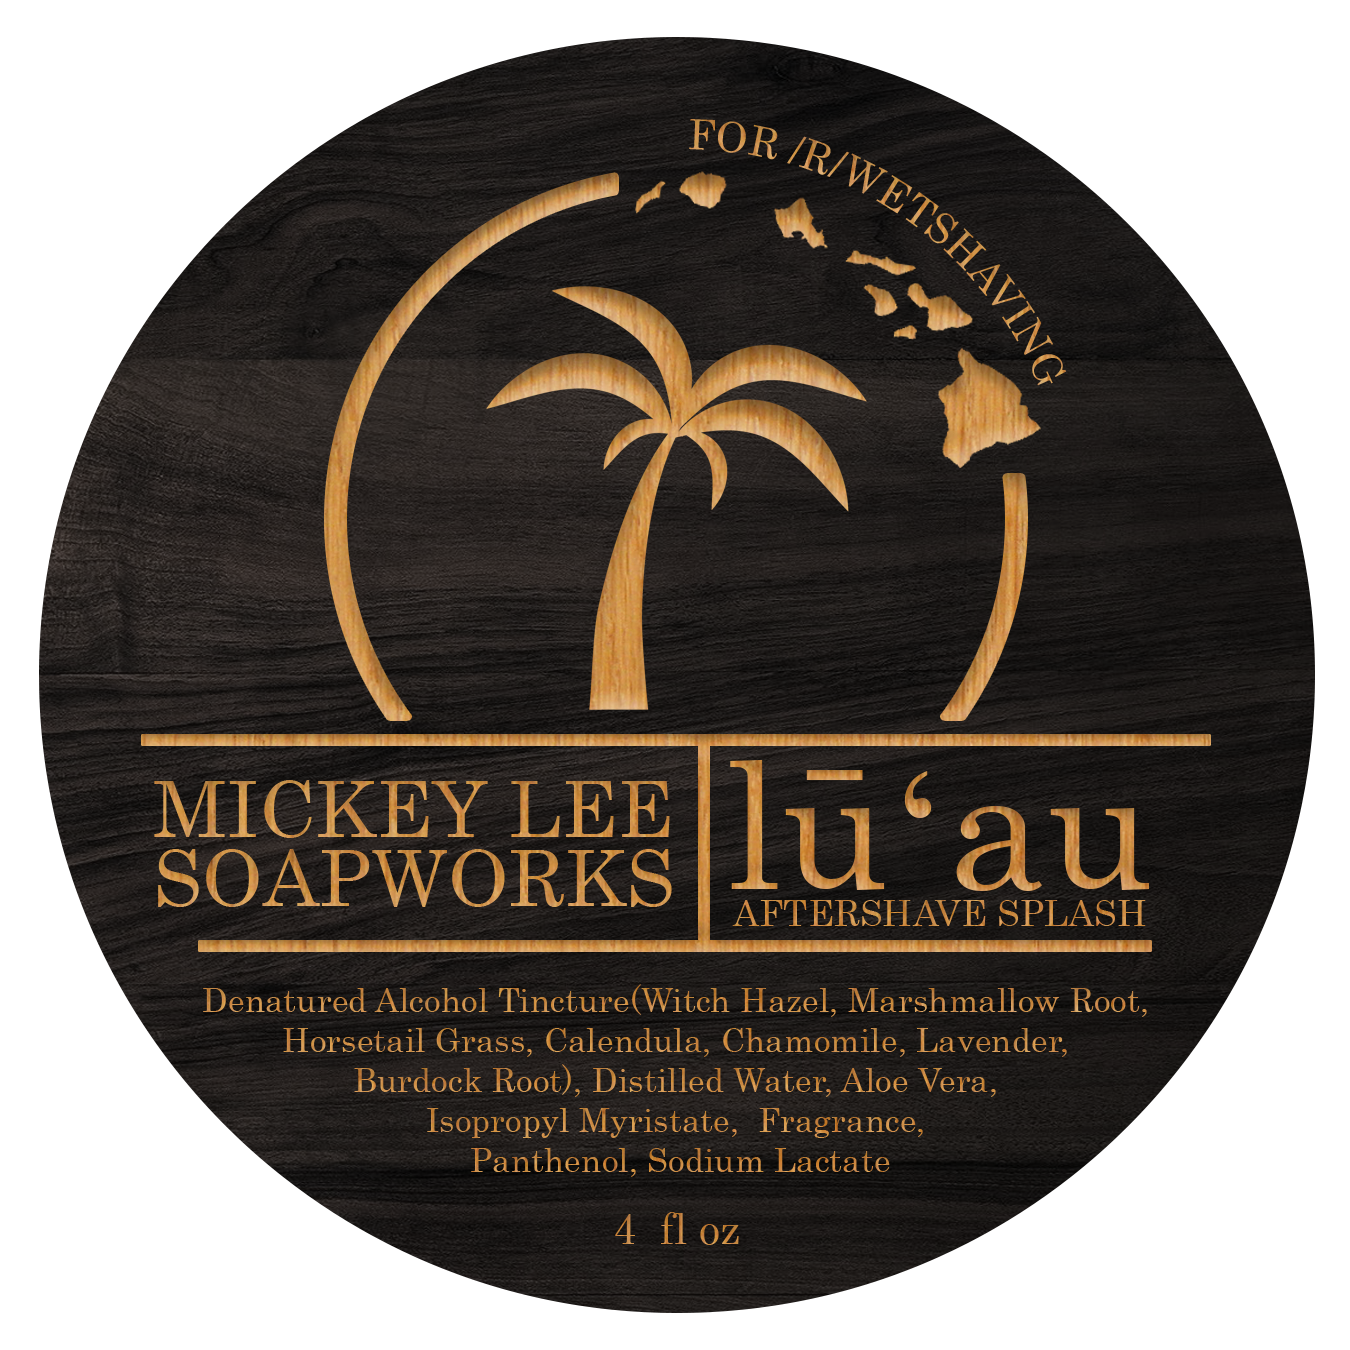 Mickey Lee Soapworks - Lu'au - Aftershave image